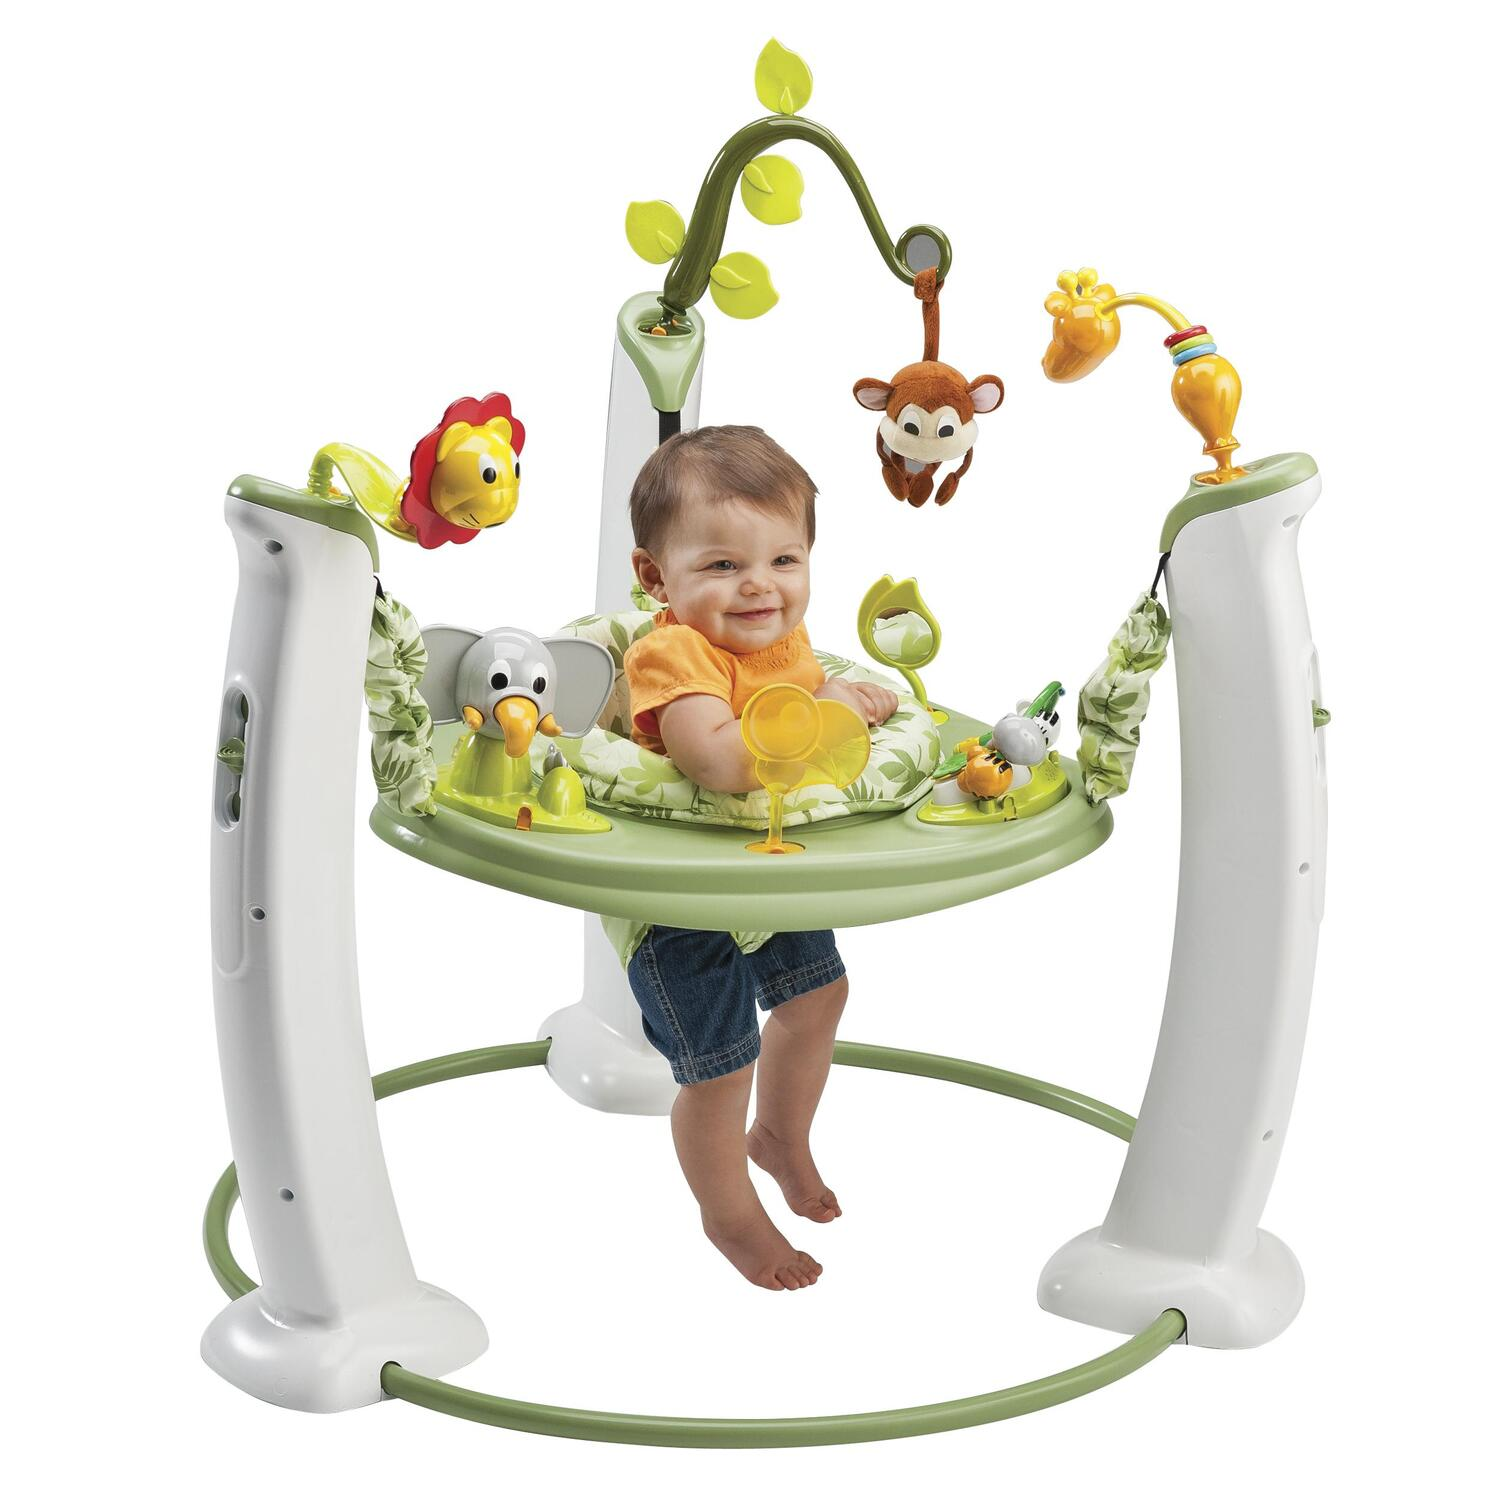 a3aea0837 Evenflo Exersaucer Jump   Learn Stationary Jumper -  89.99